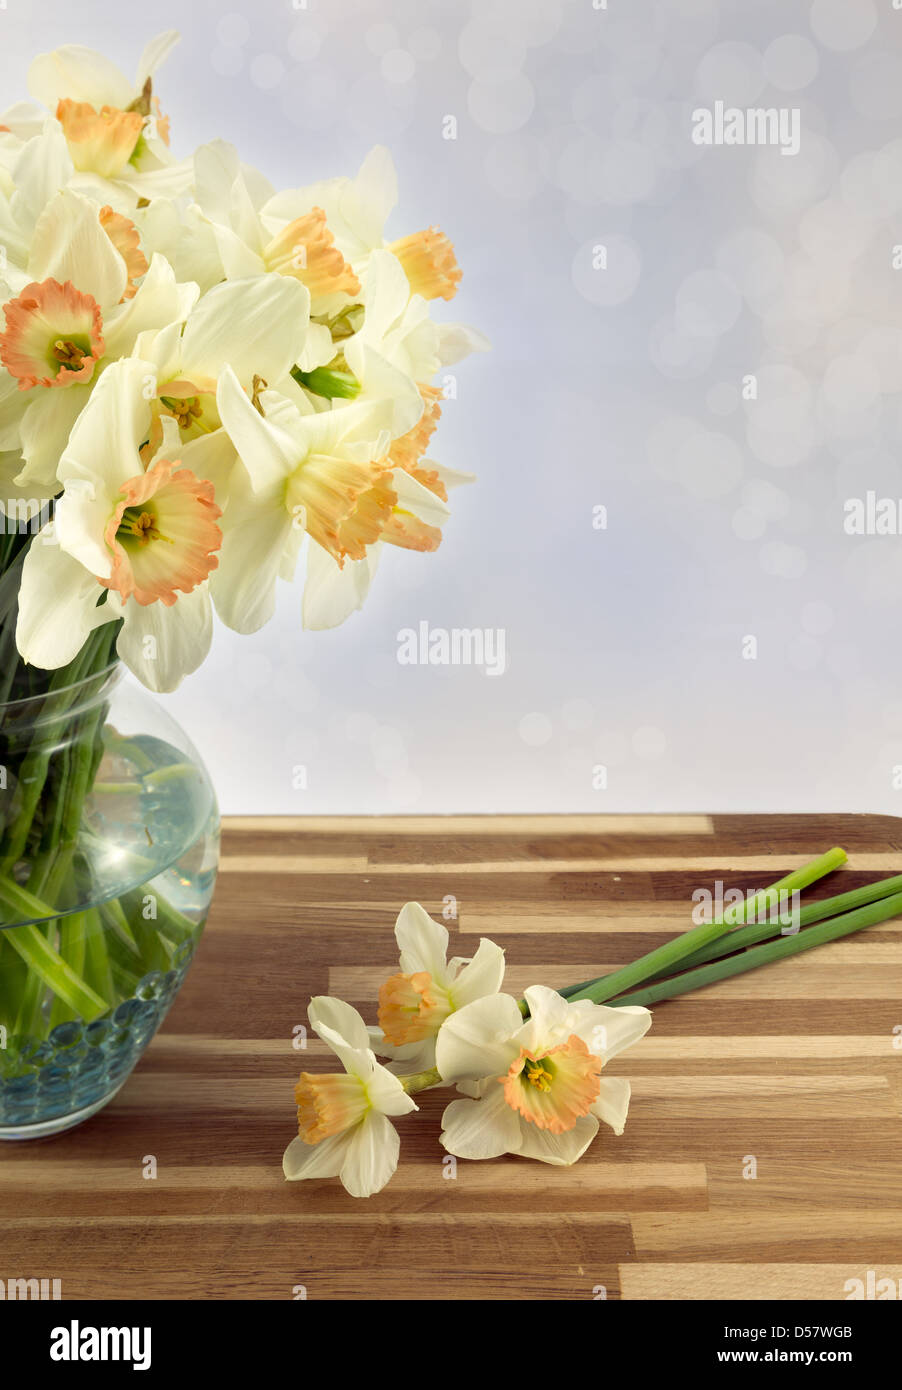 Beautiful spring daffodils in a glass vase. - Stock Image